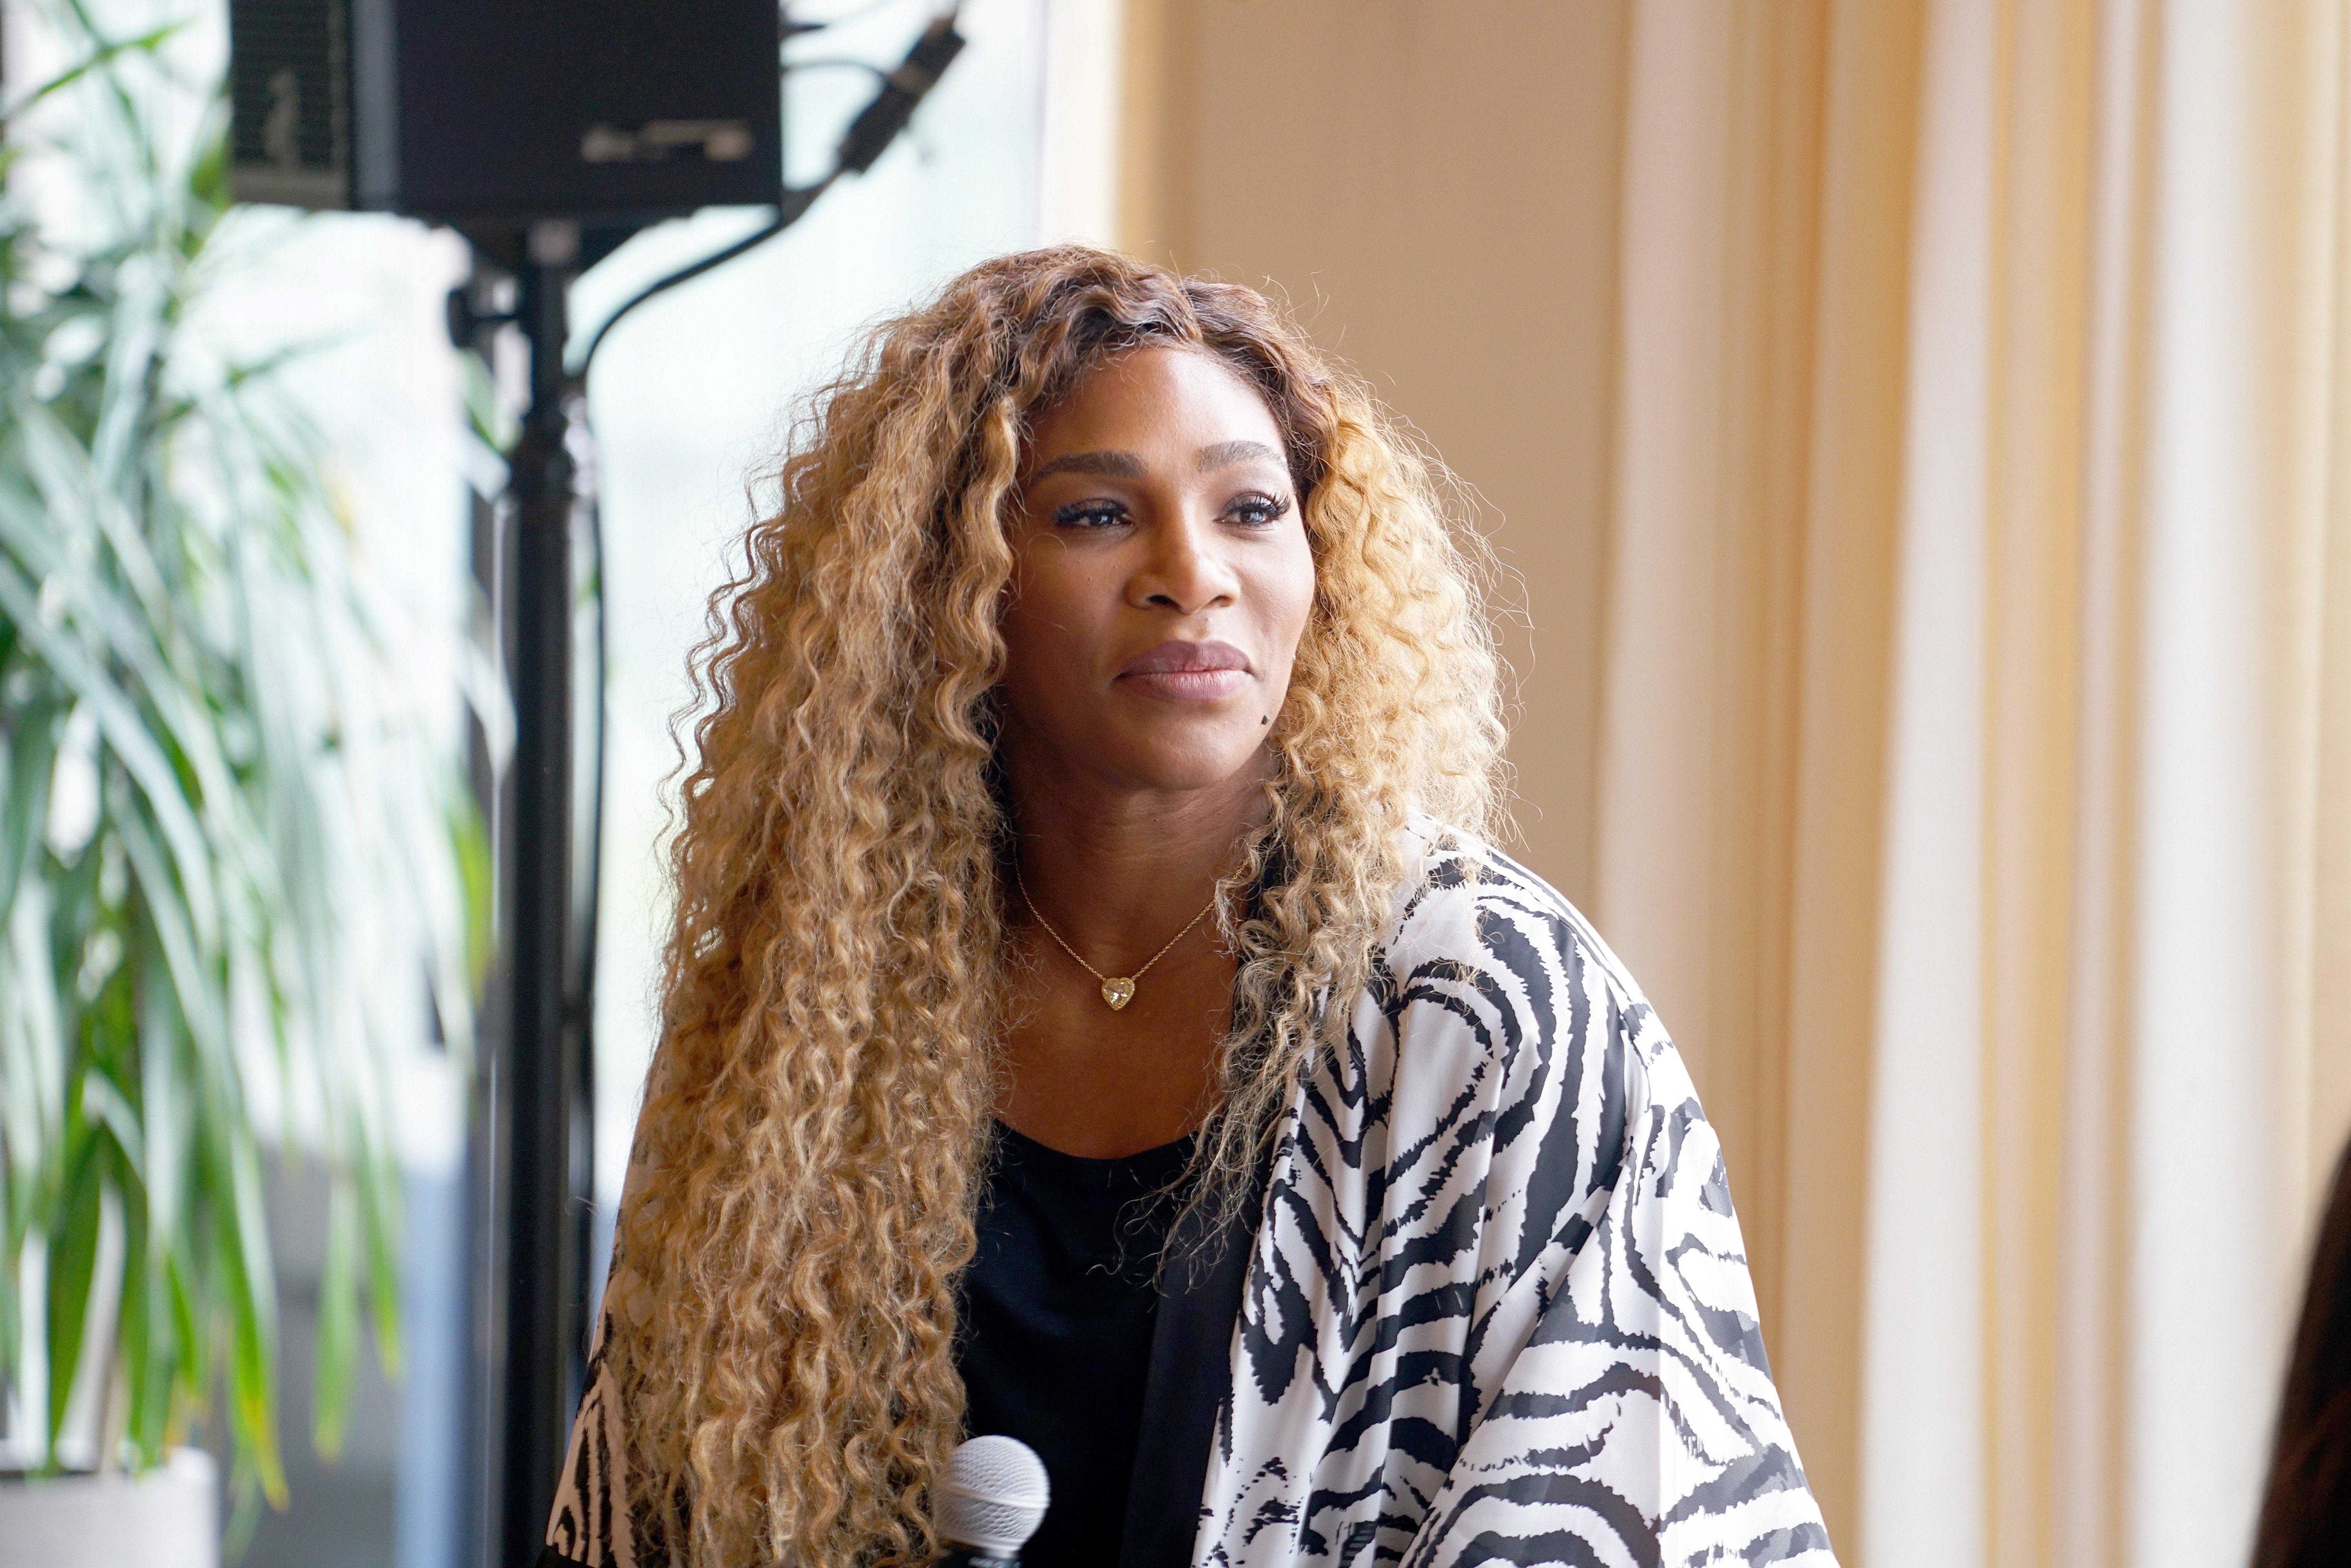 Serena Williams during a speaking engagement on New York Fashion Week in September 2019. | Photo: Getty Images